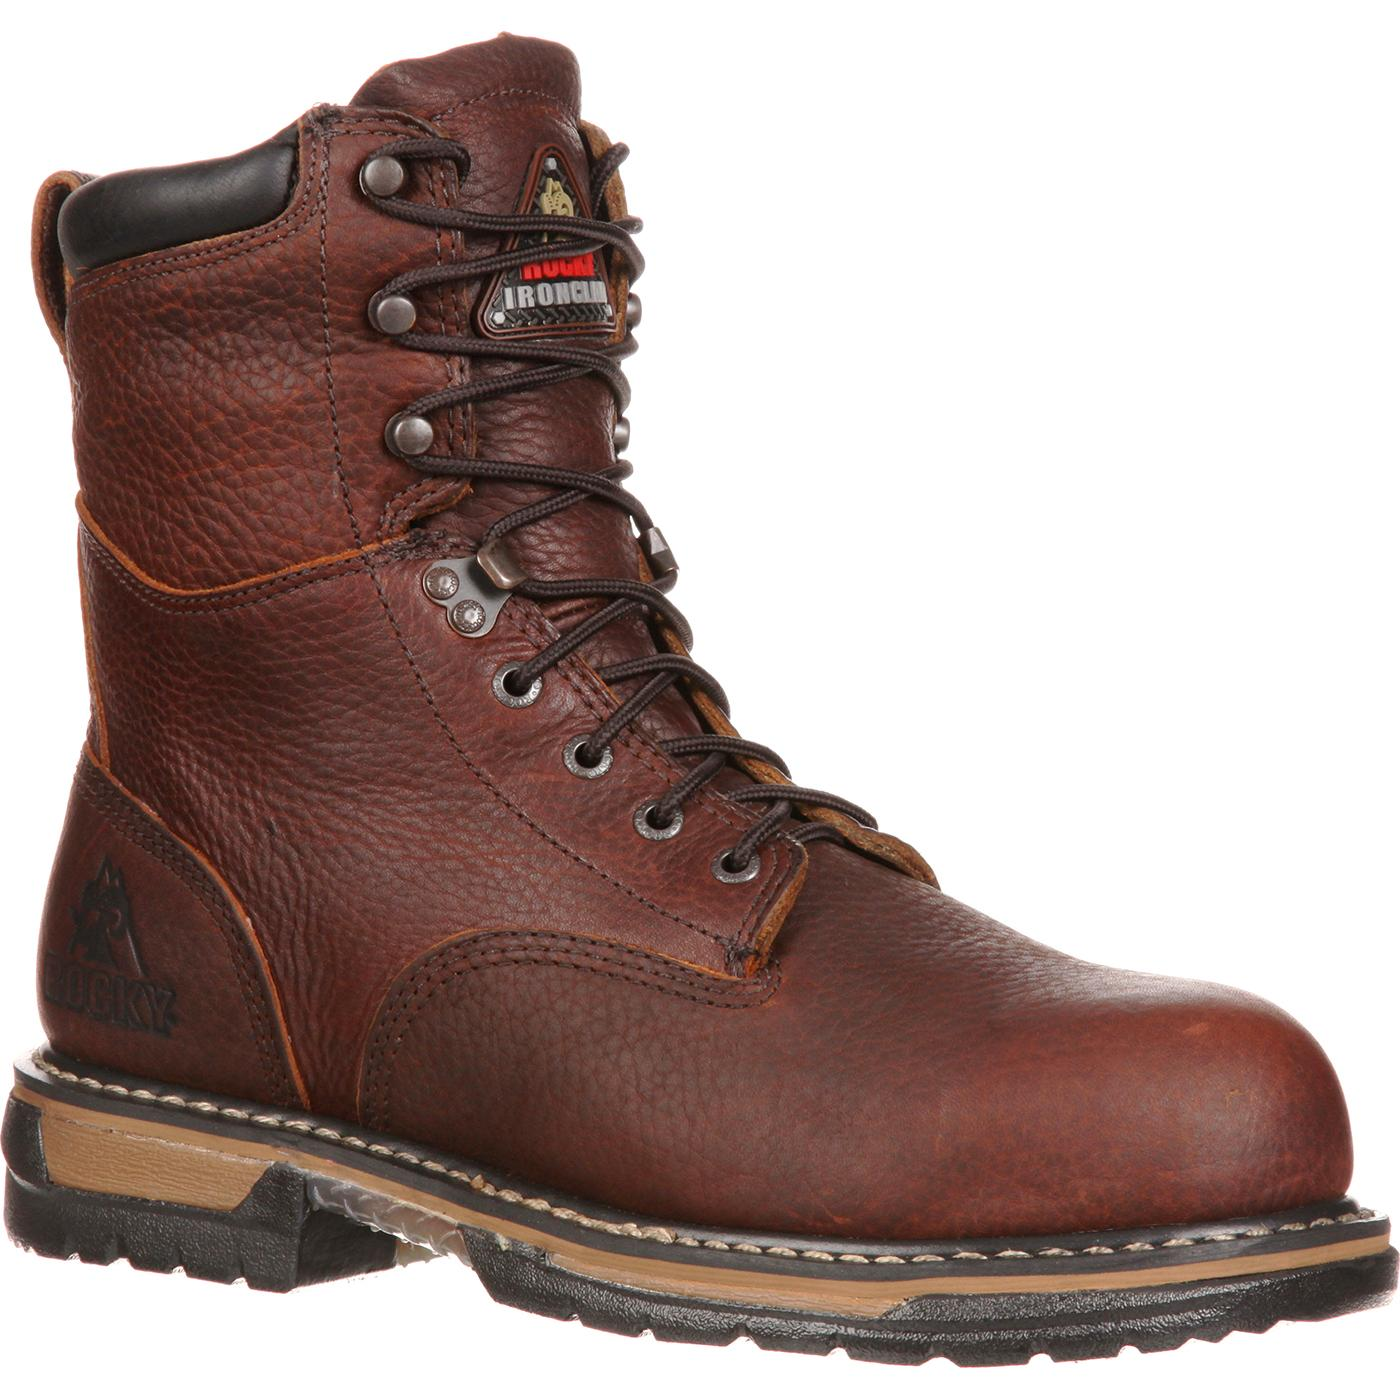 Rocky IronClad Waterproof Insulated Steel Toe Work Boot